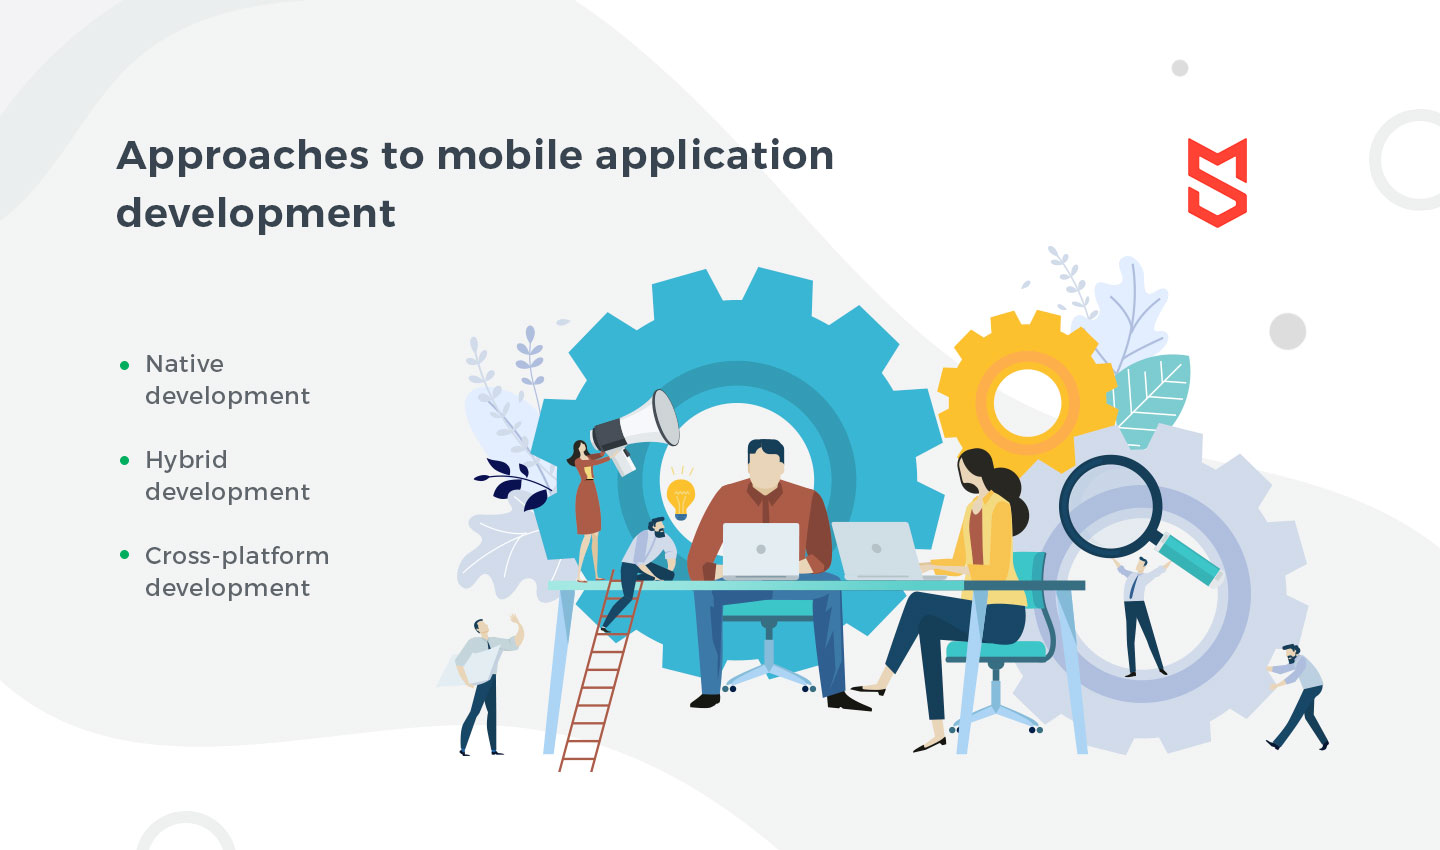 Approaches to mobile application development